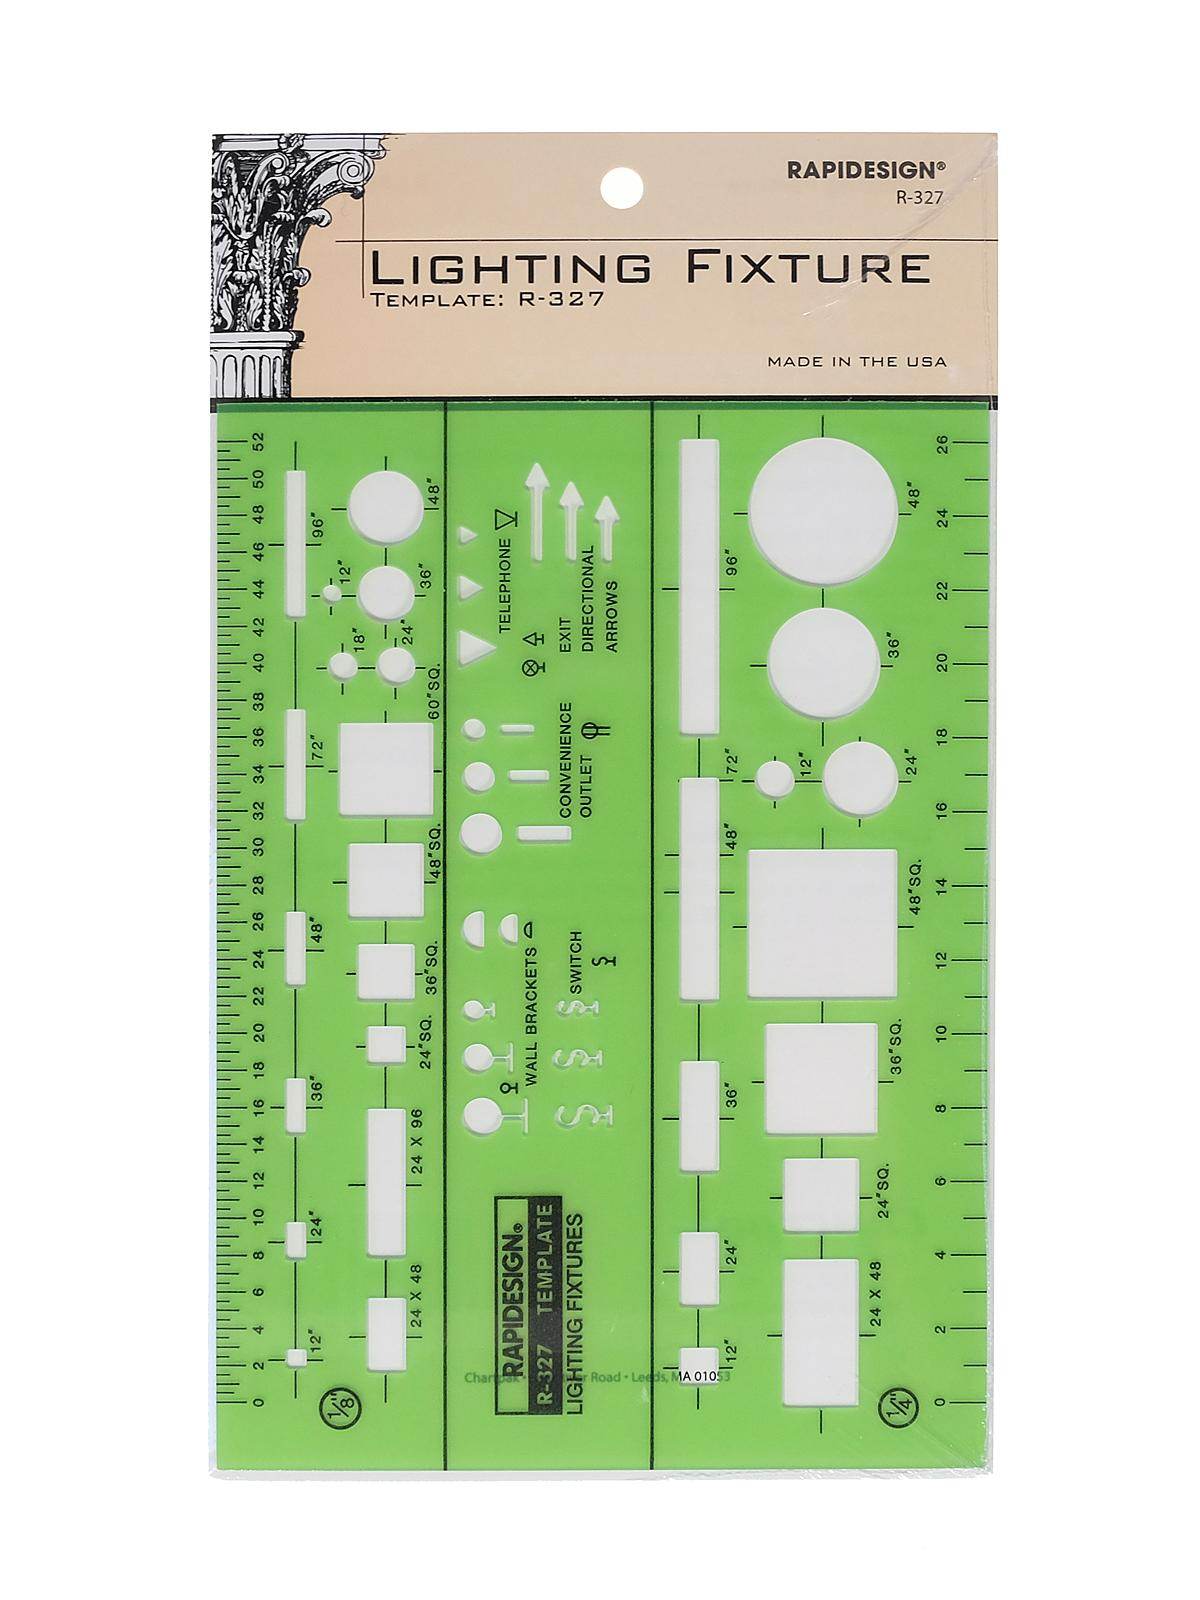 Electrical Drafting And Design Templates Basic Lighting Fixture Symbols Each